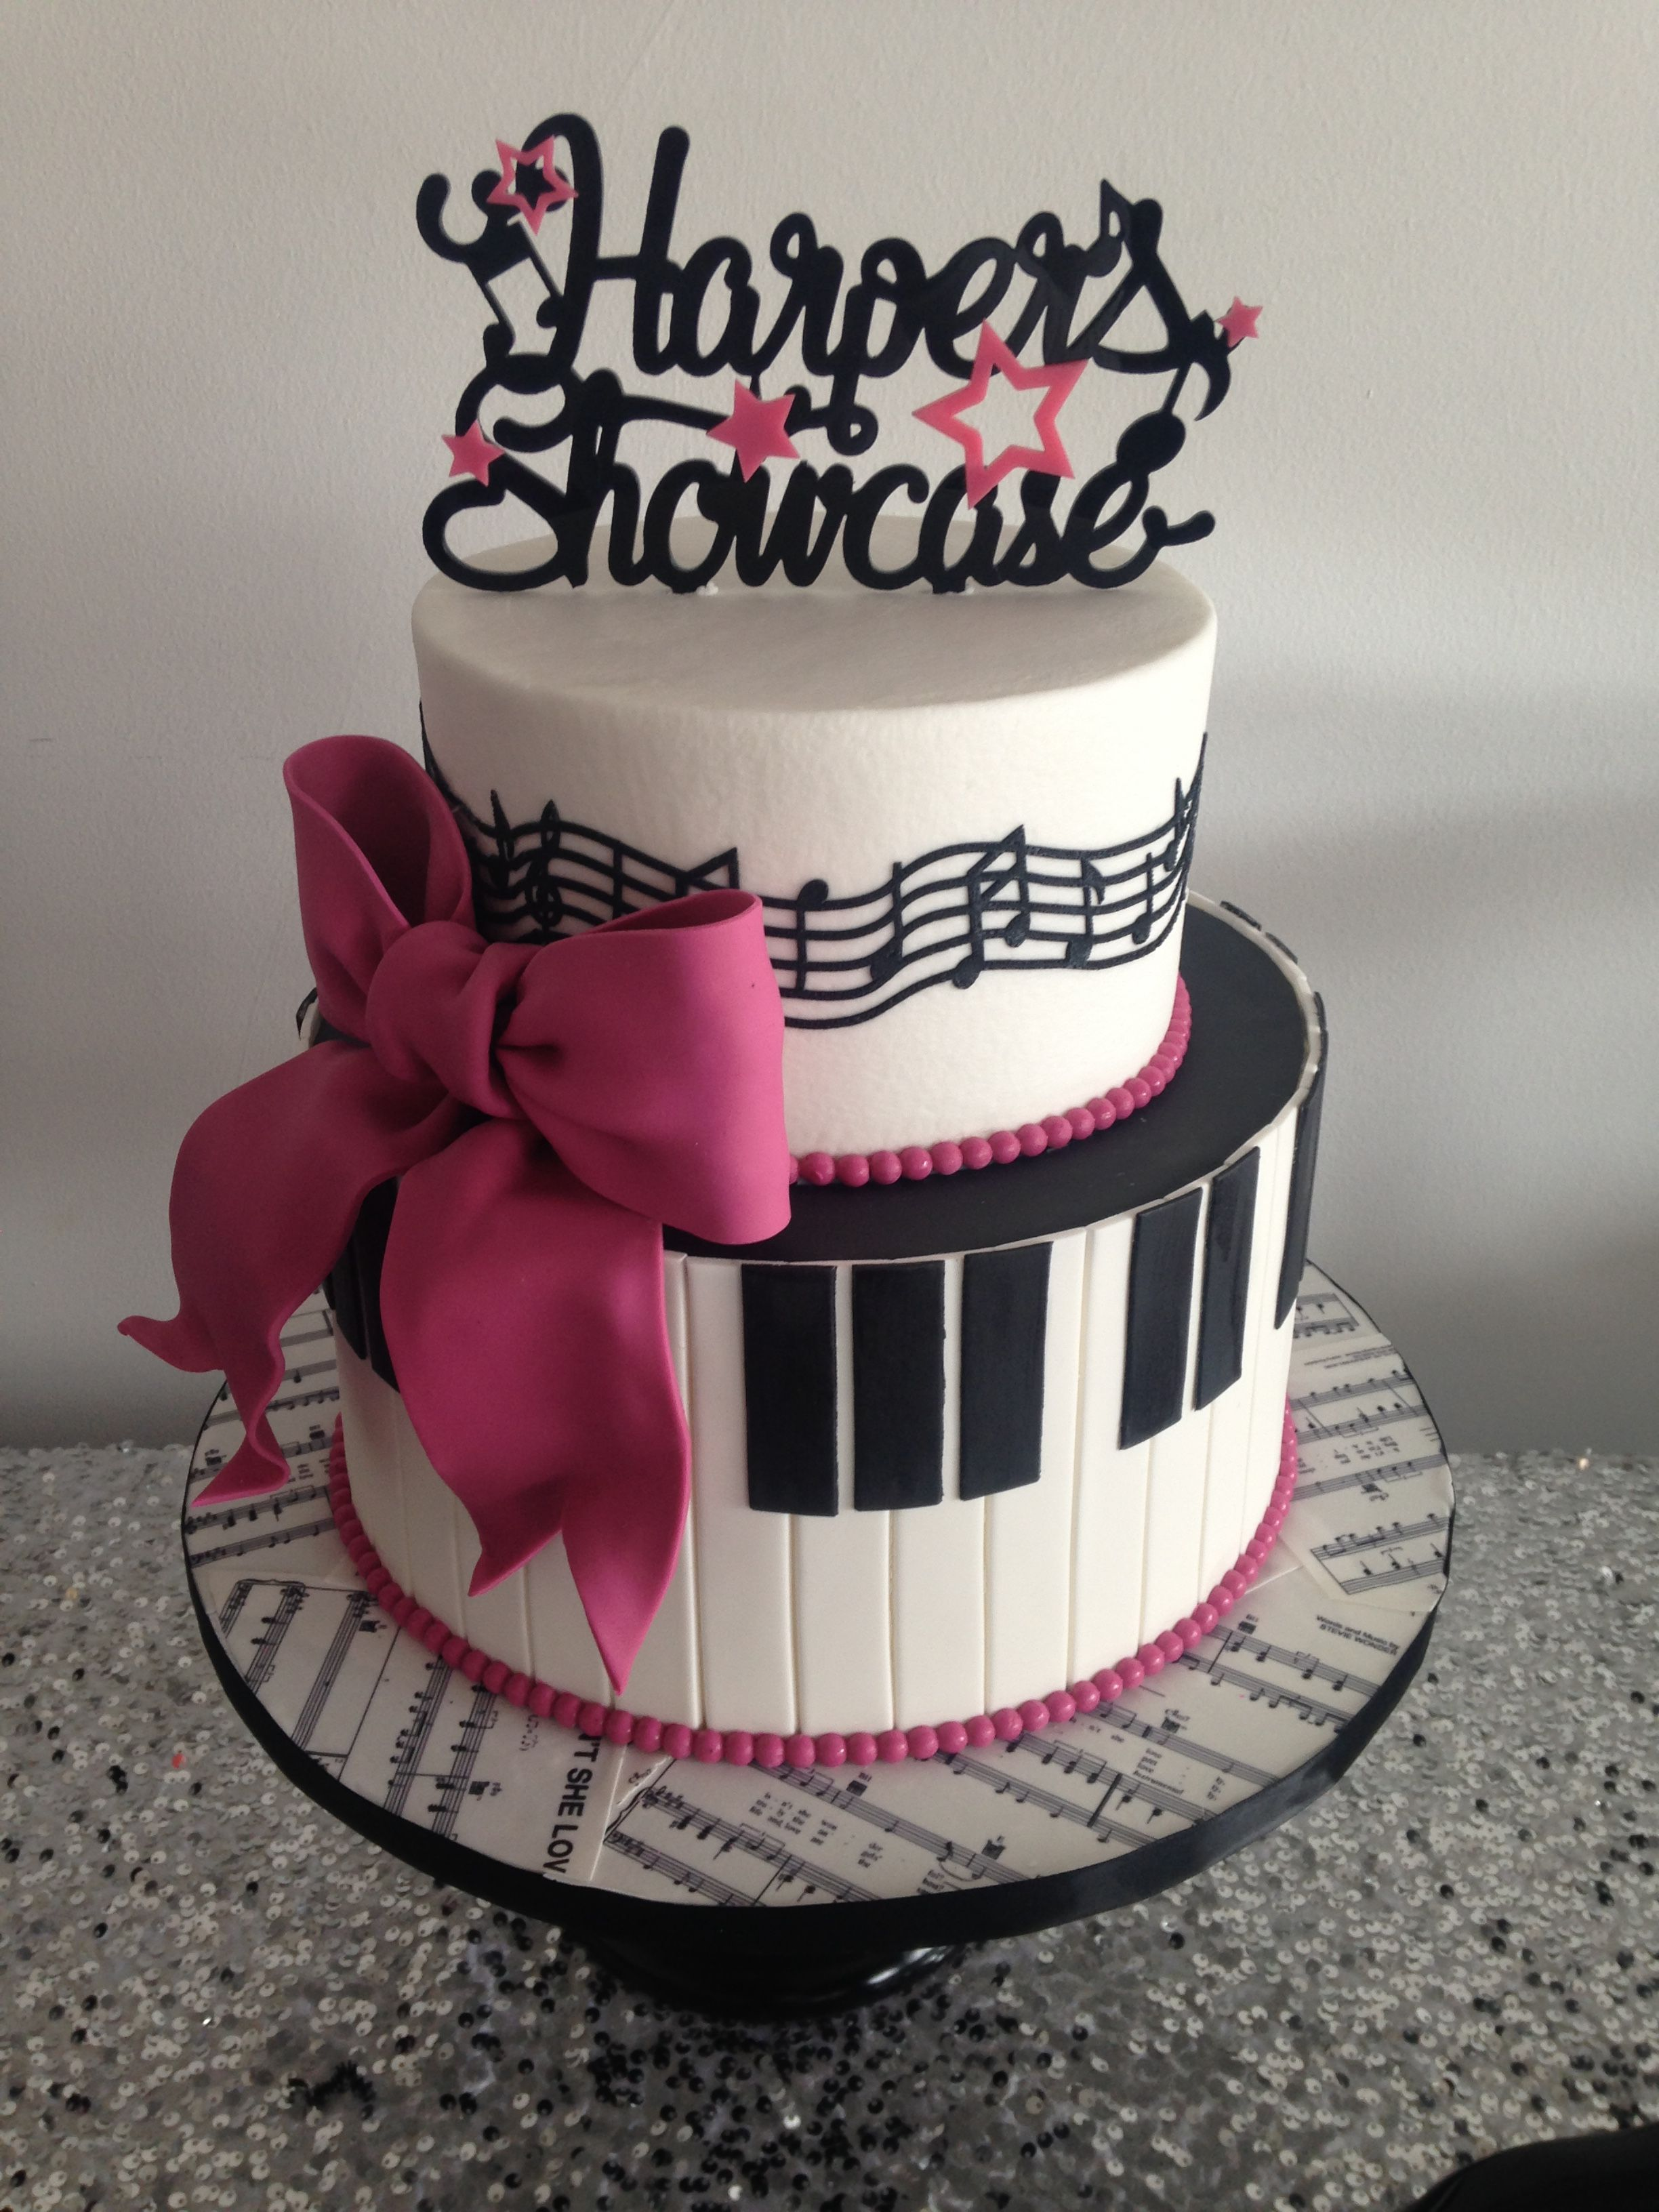 For The Love Of Music Little Girls Birthday Piano Keys And Music